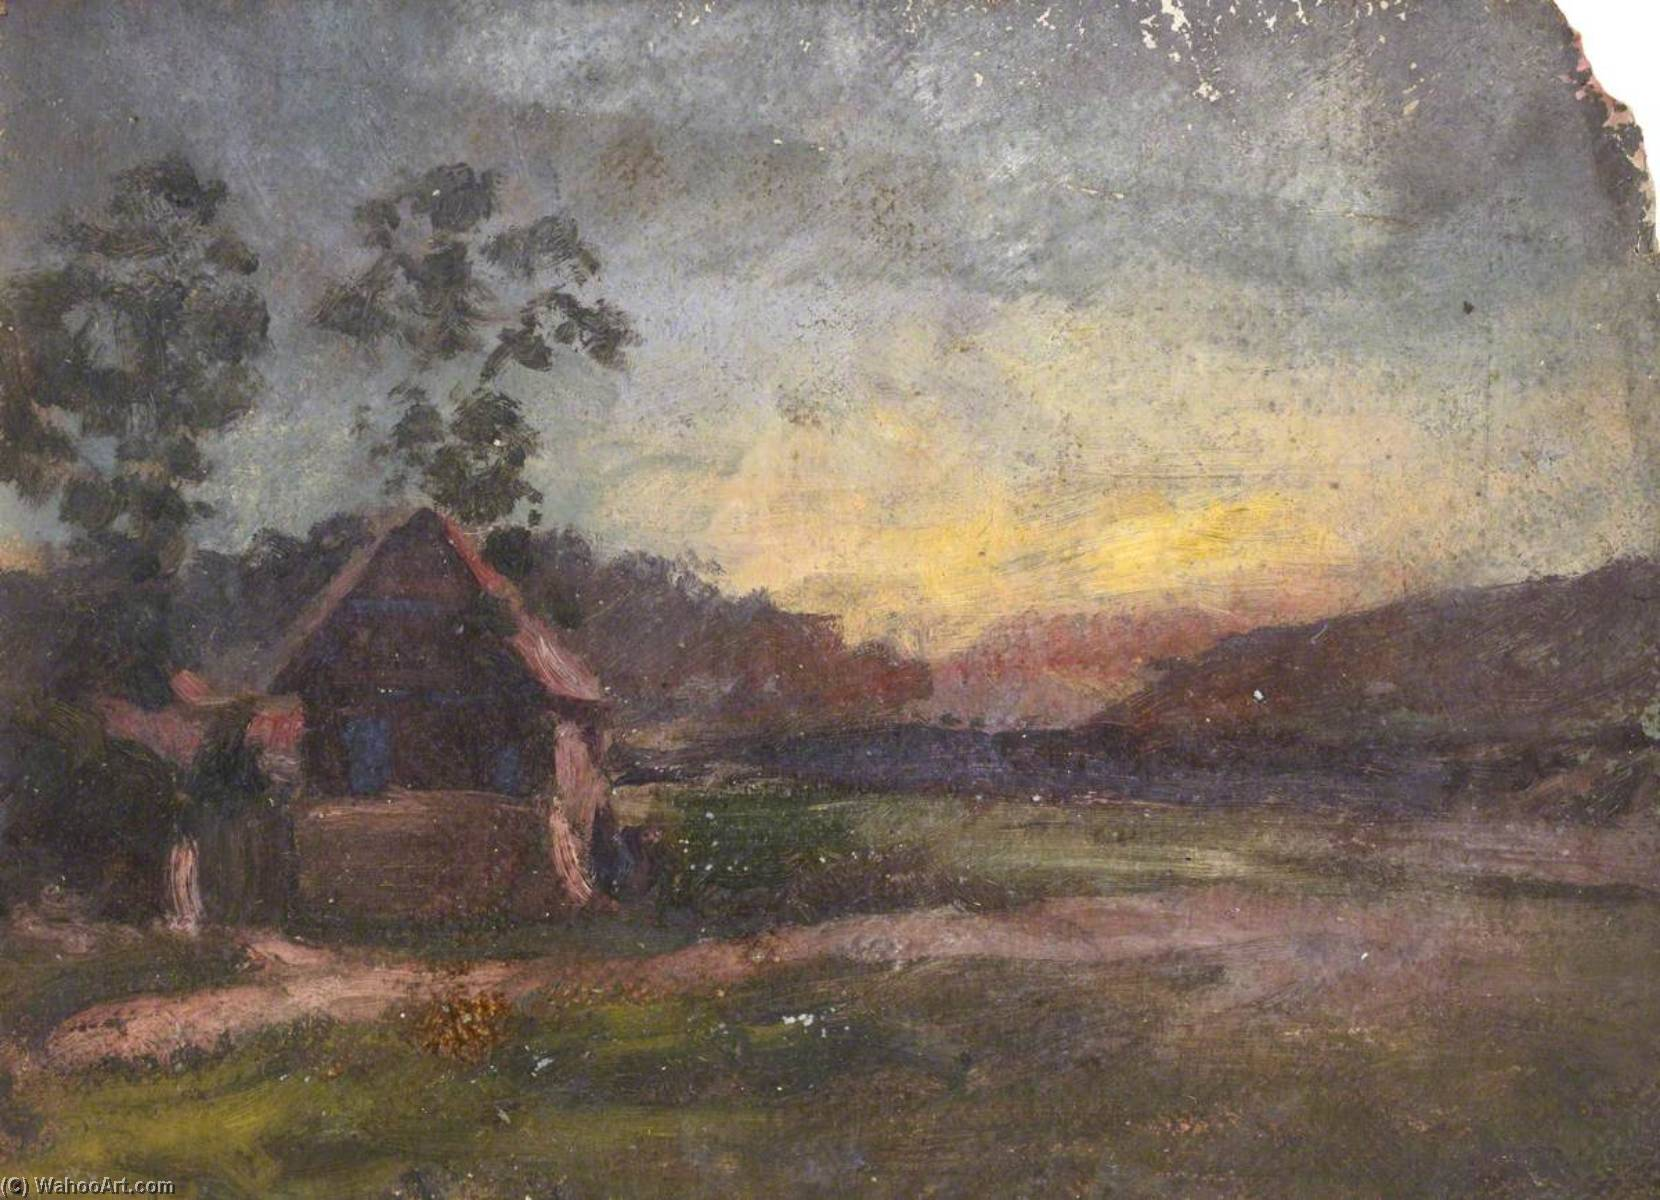 Cottage in a Landscape, Oil by Thomas Stuart Smith